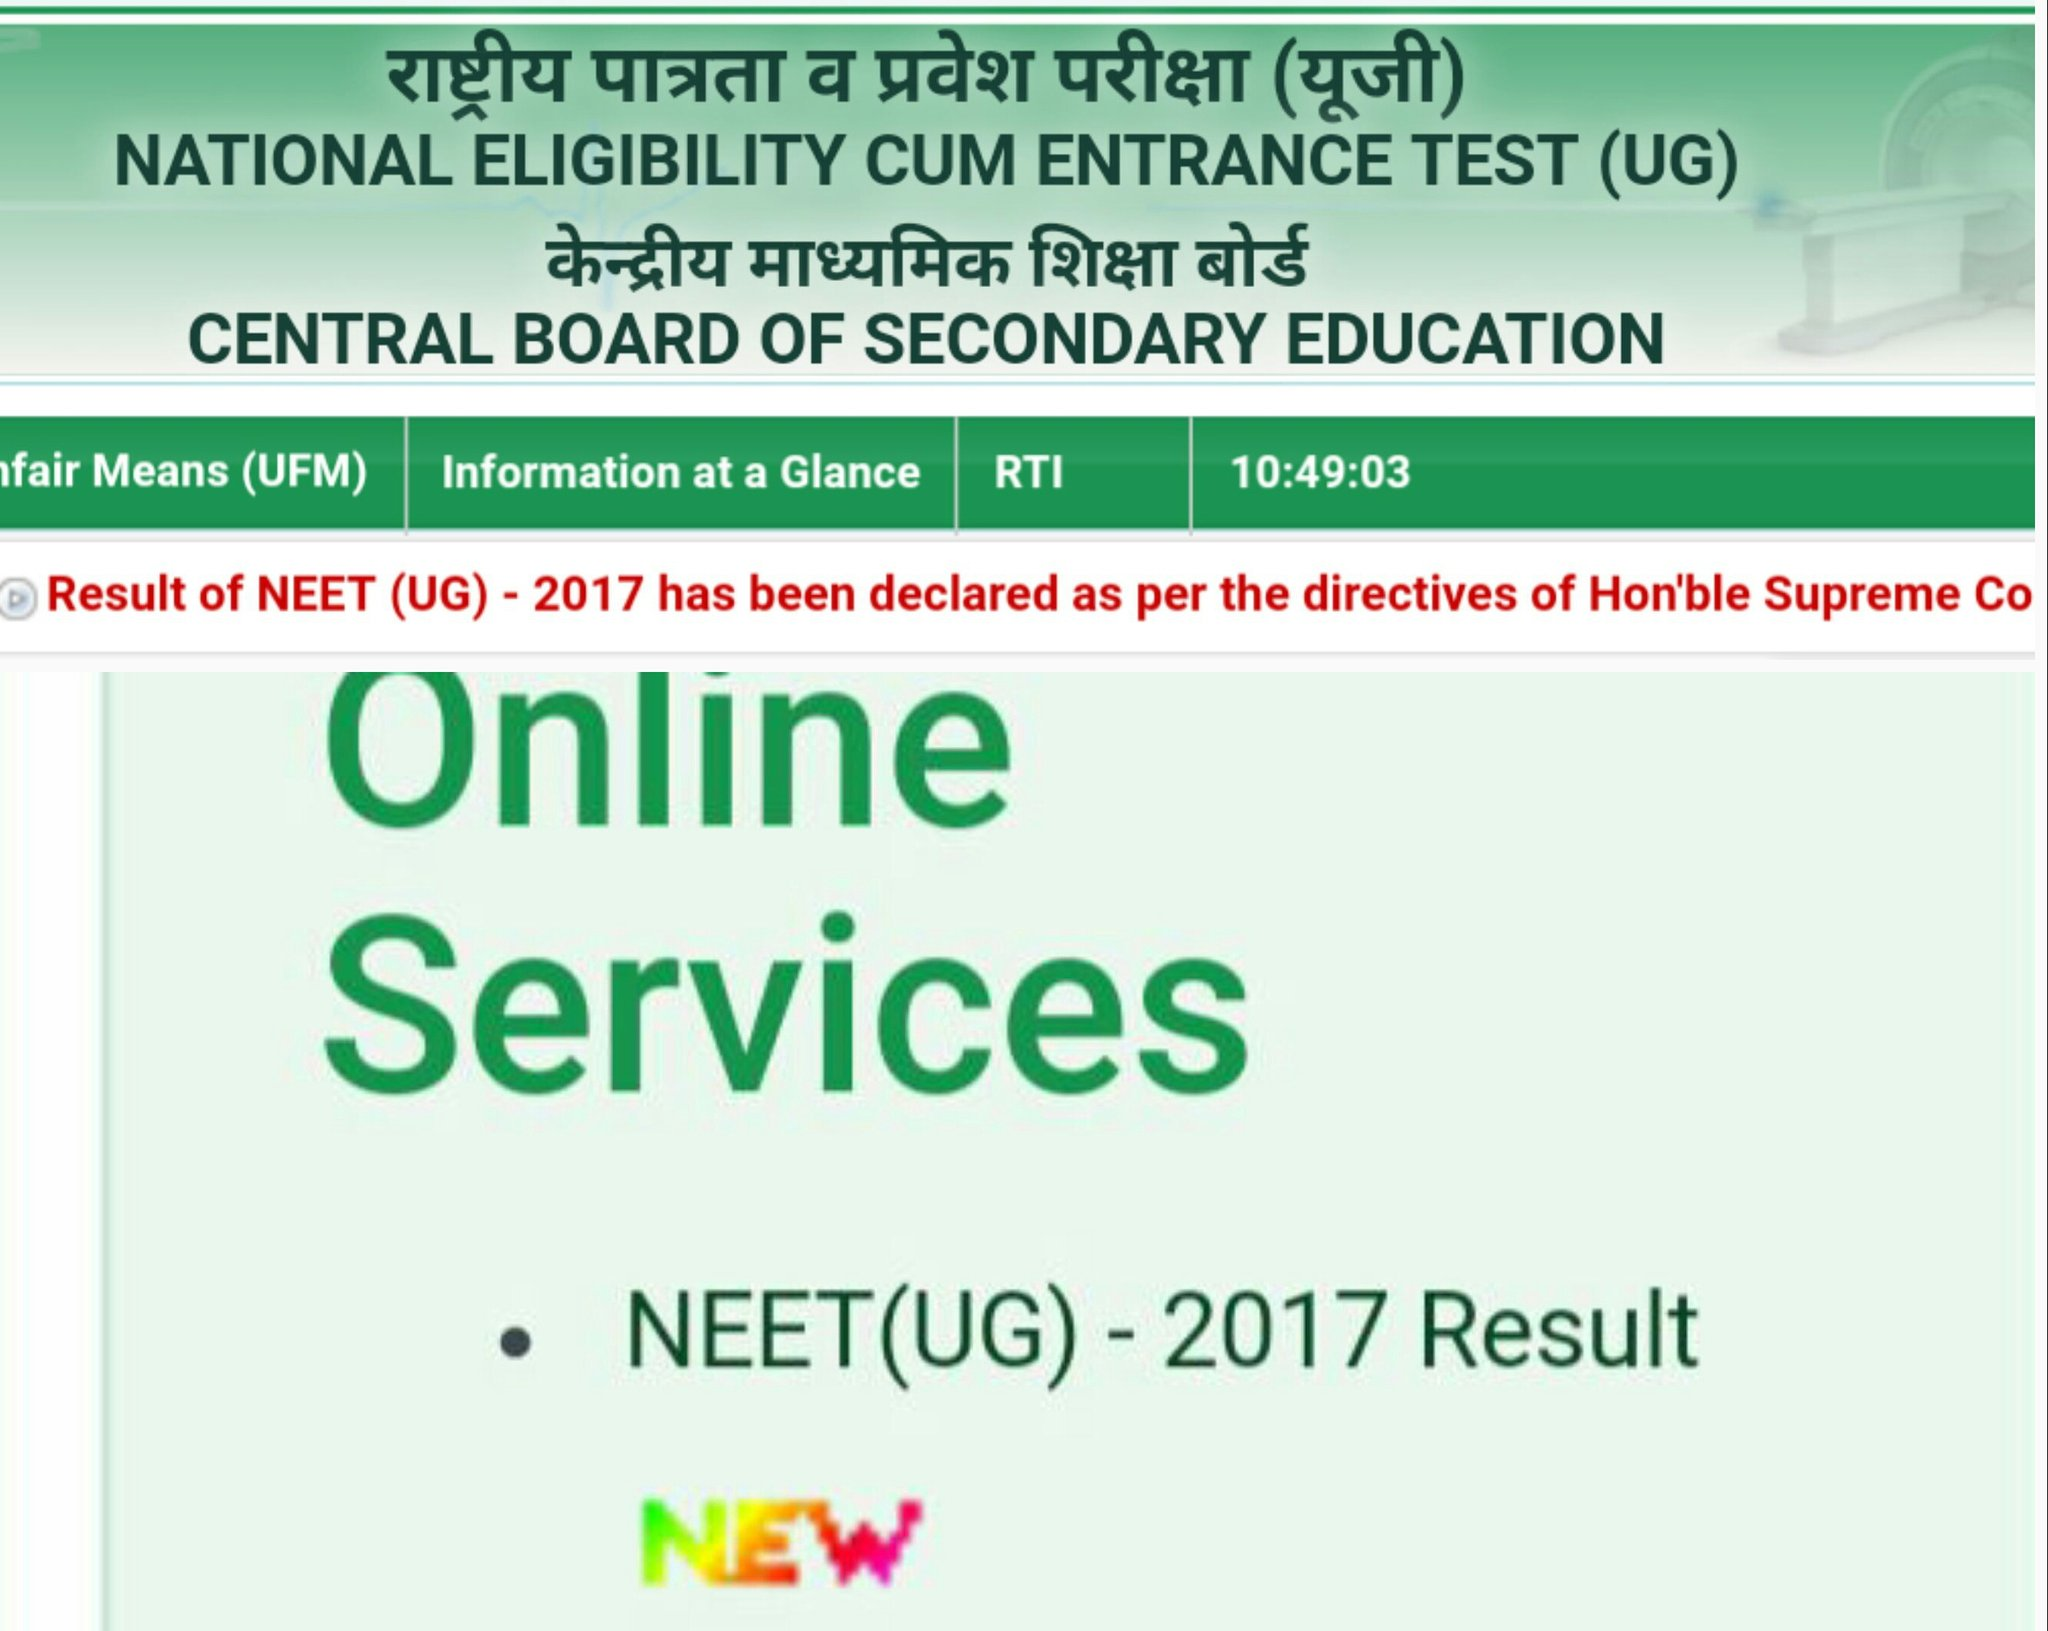 CBSE declares NEET results, check your marks here